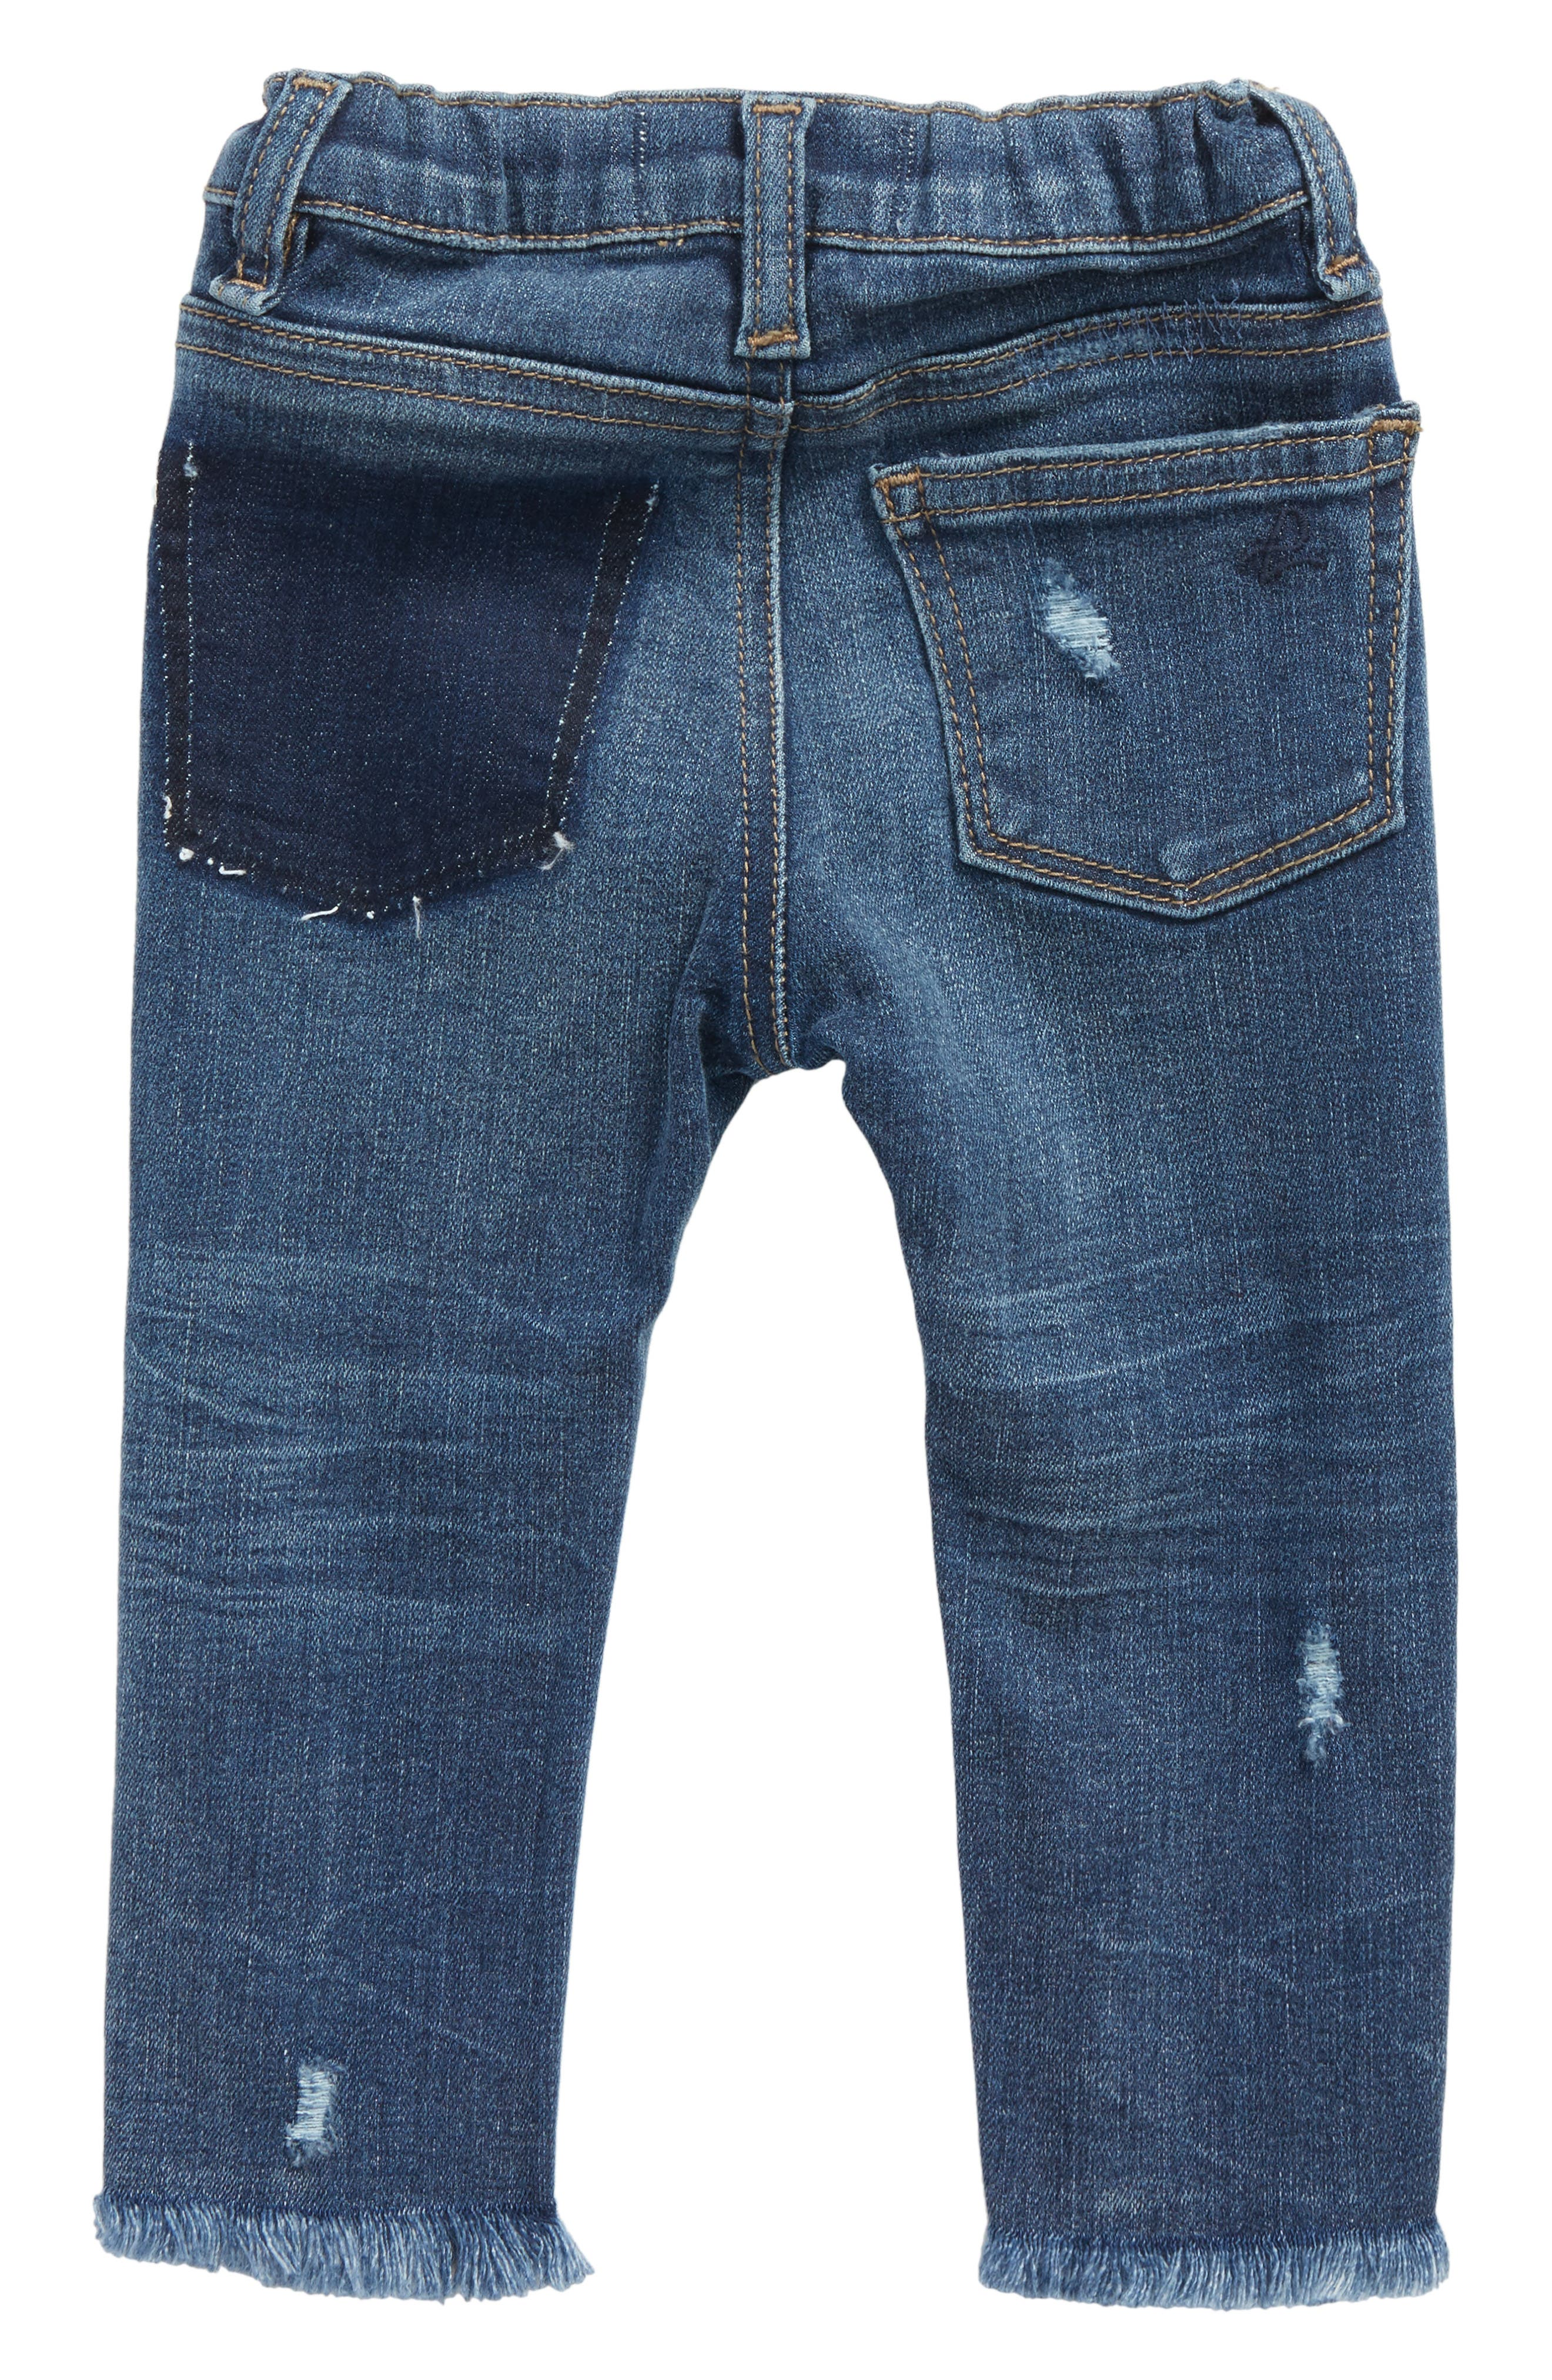 Distressed Skinny Jeans,                             Alternate thumbnail 2, color,                             425